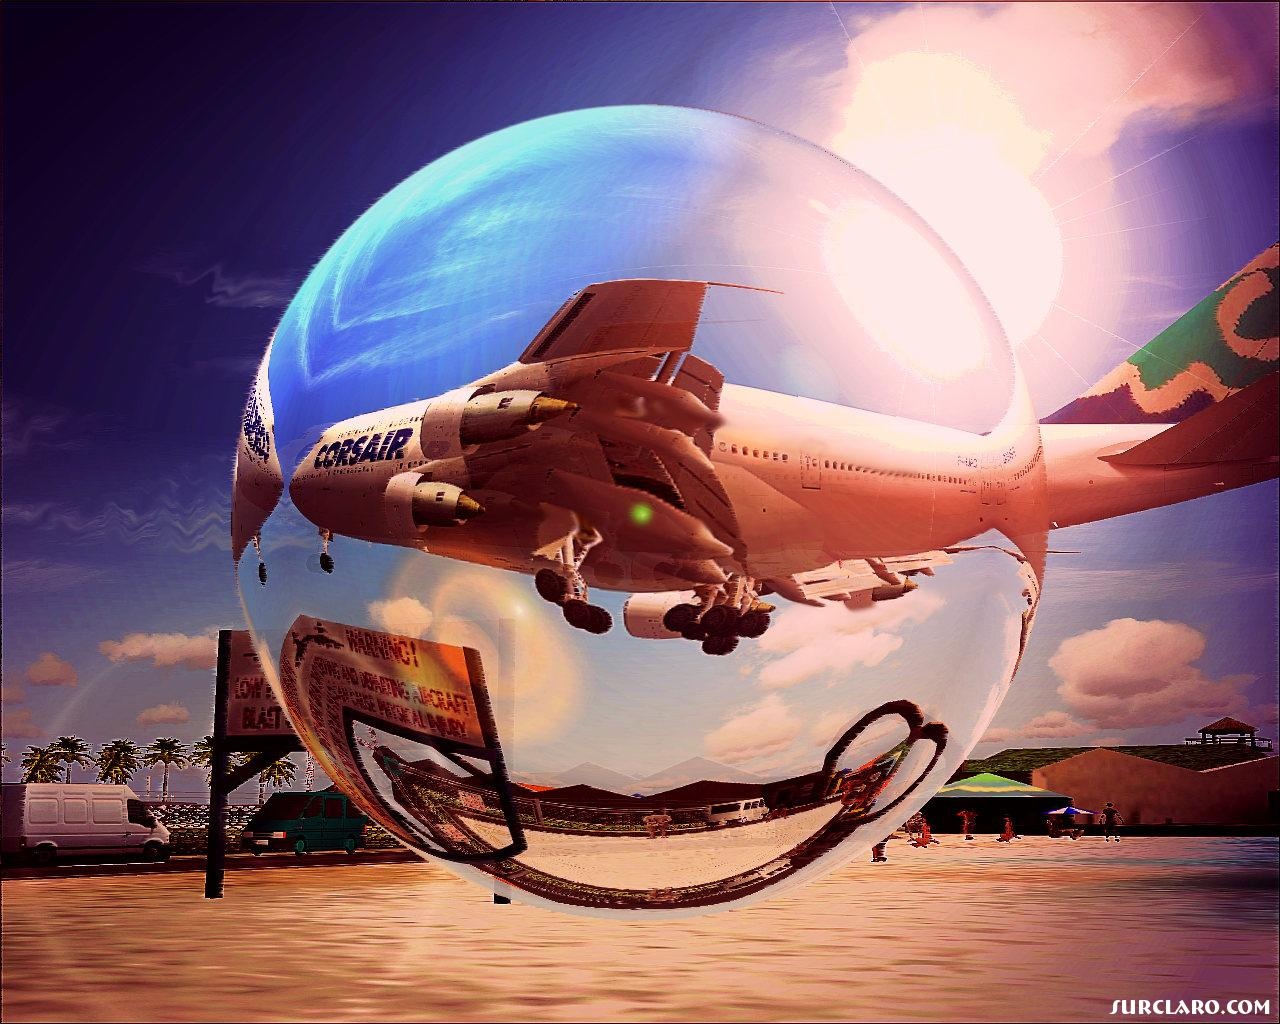 The full artistic views, expressing colors, saturations, and rendering, expressing the beauty and greatness of that landing airplane at St. Maarten - Photo 15562